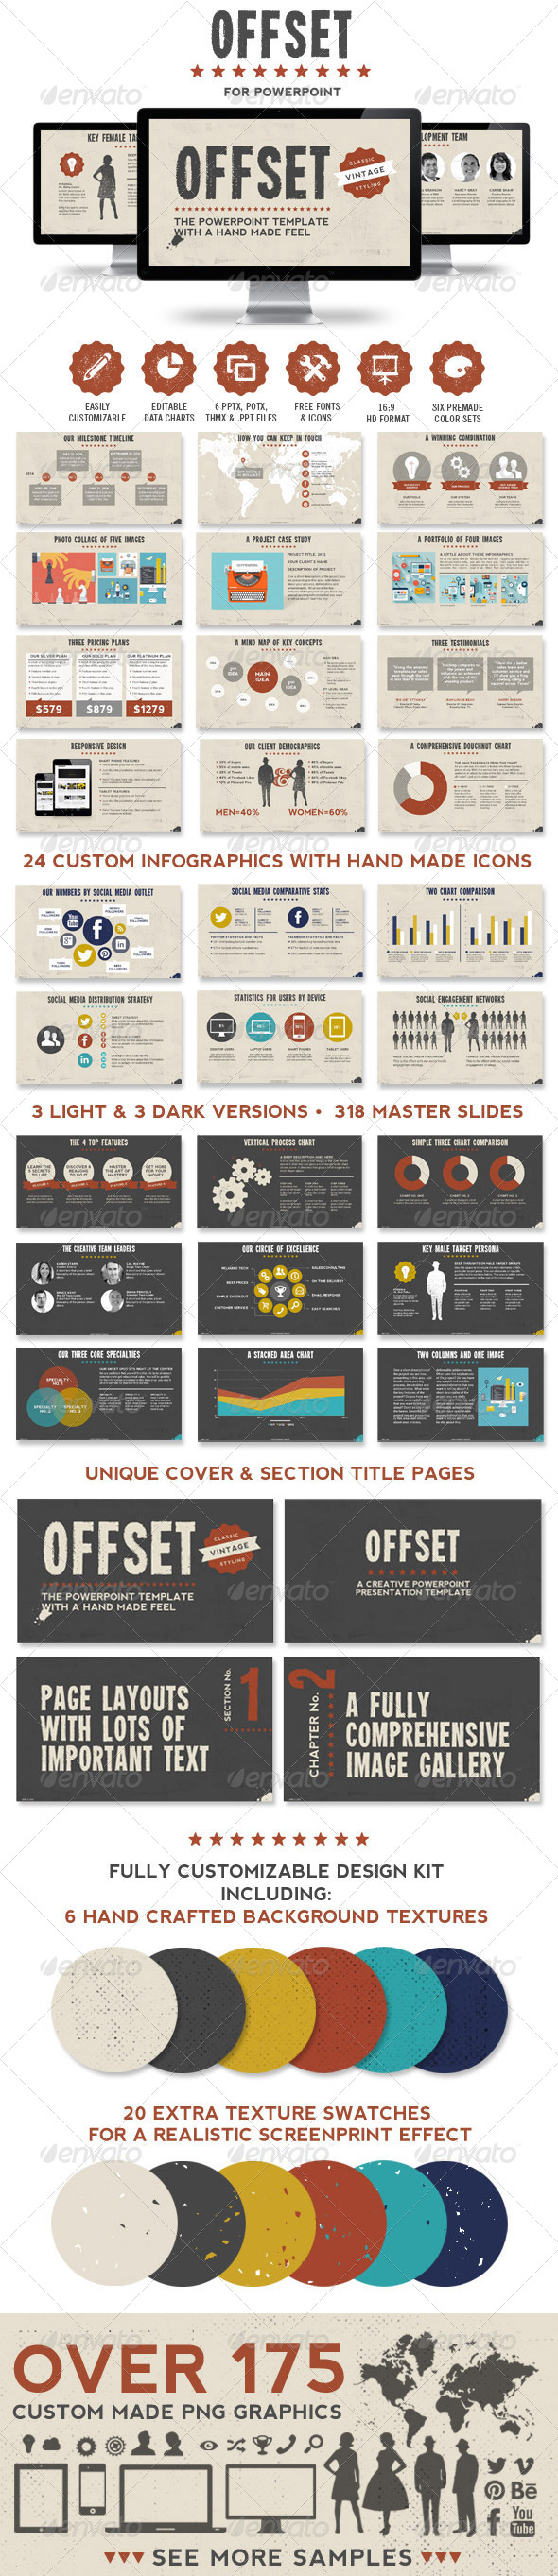 Offset Powerpoint Presentation Template - Creative Powerpoint Templates